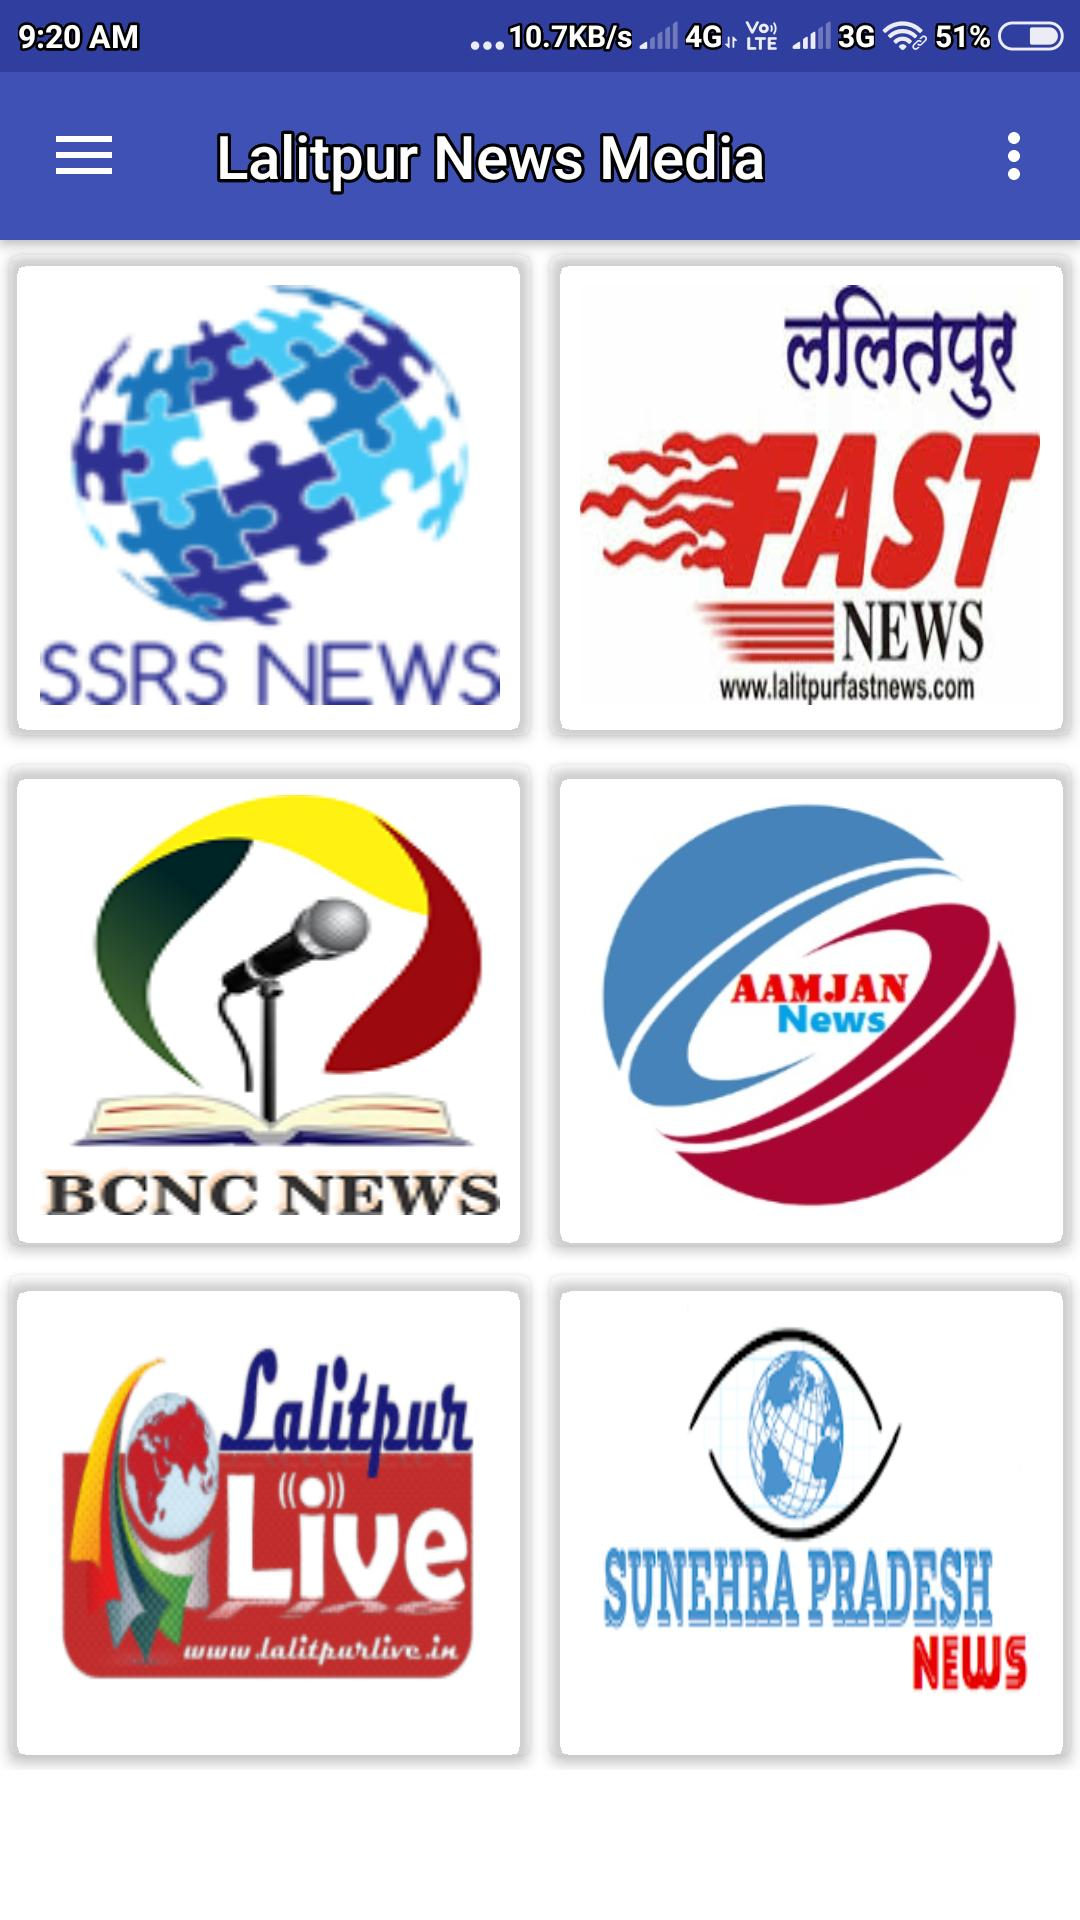 Lalitpur News Media - ALL LTP News In One App for Android